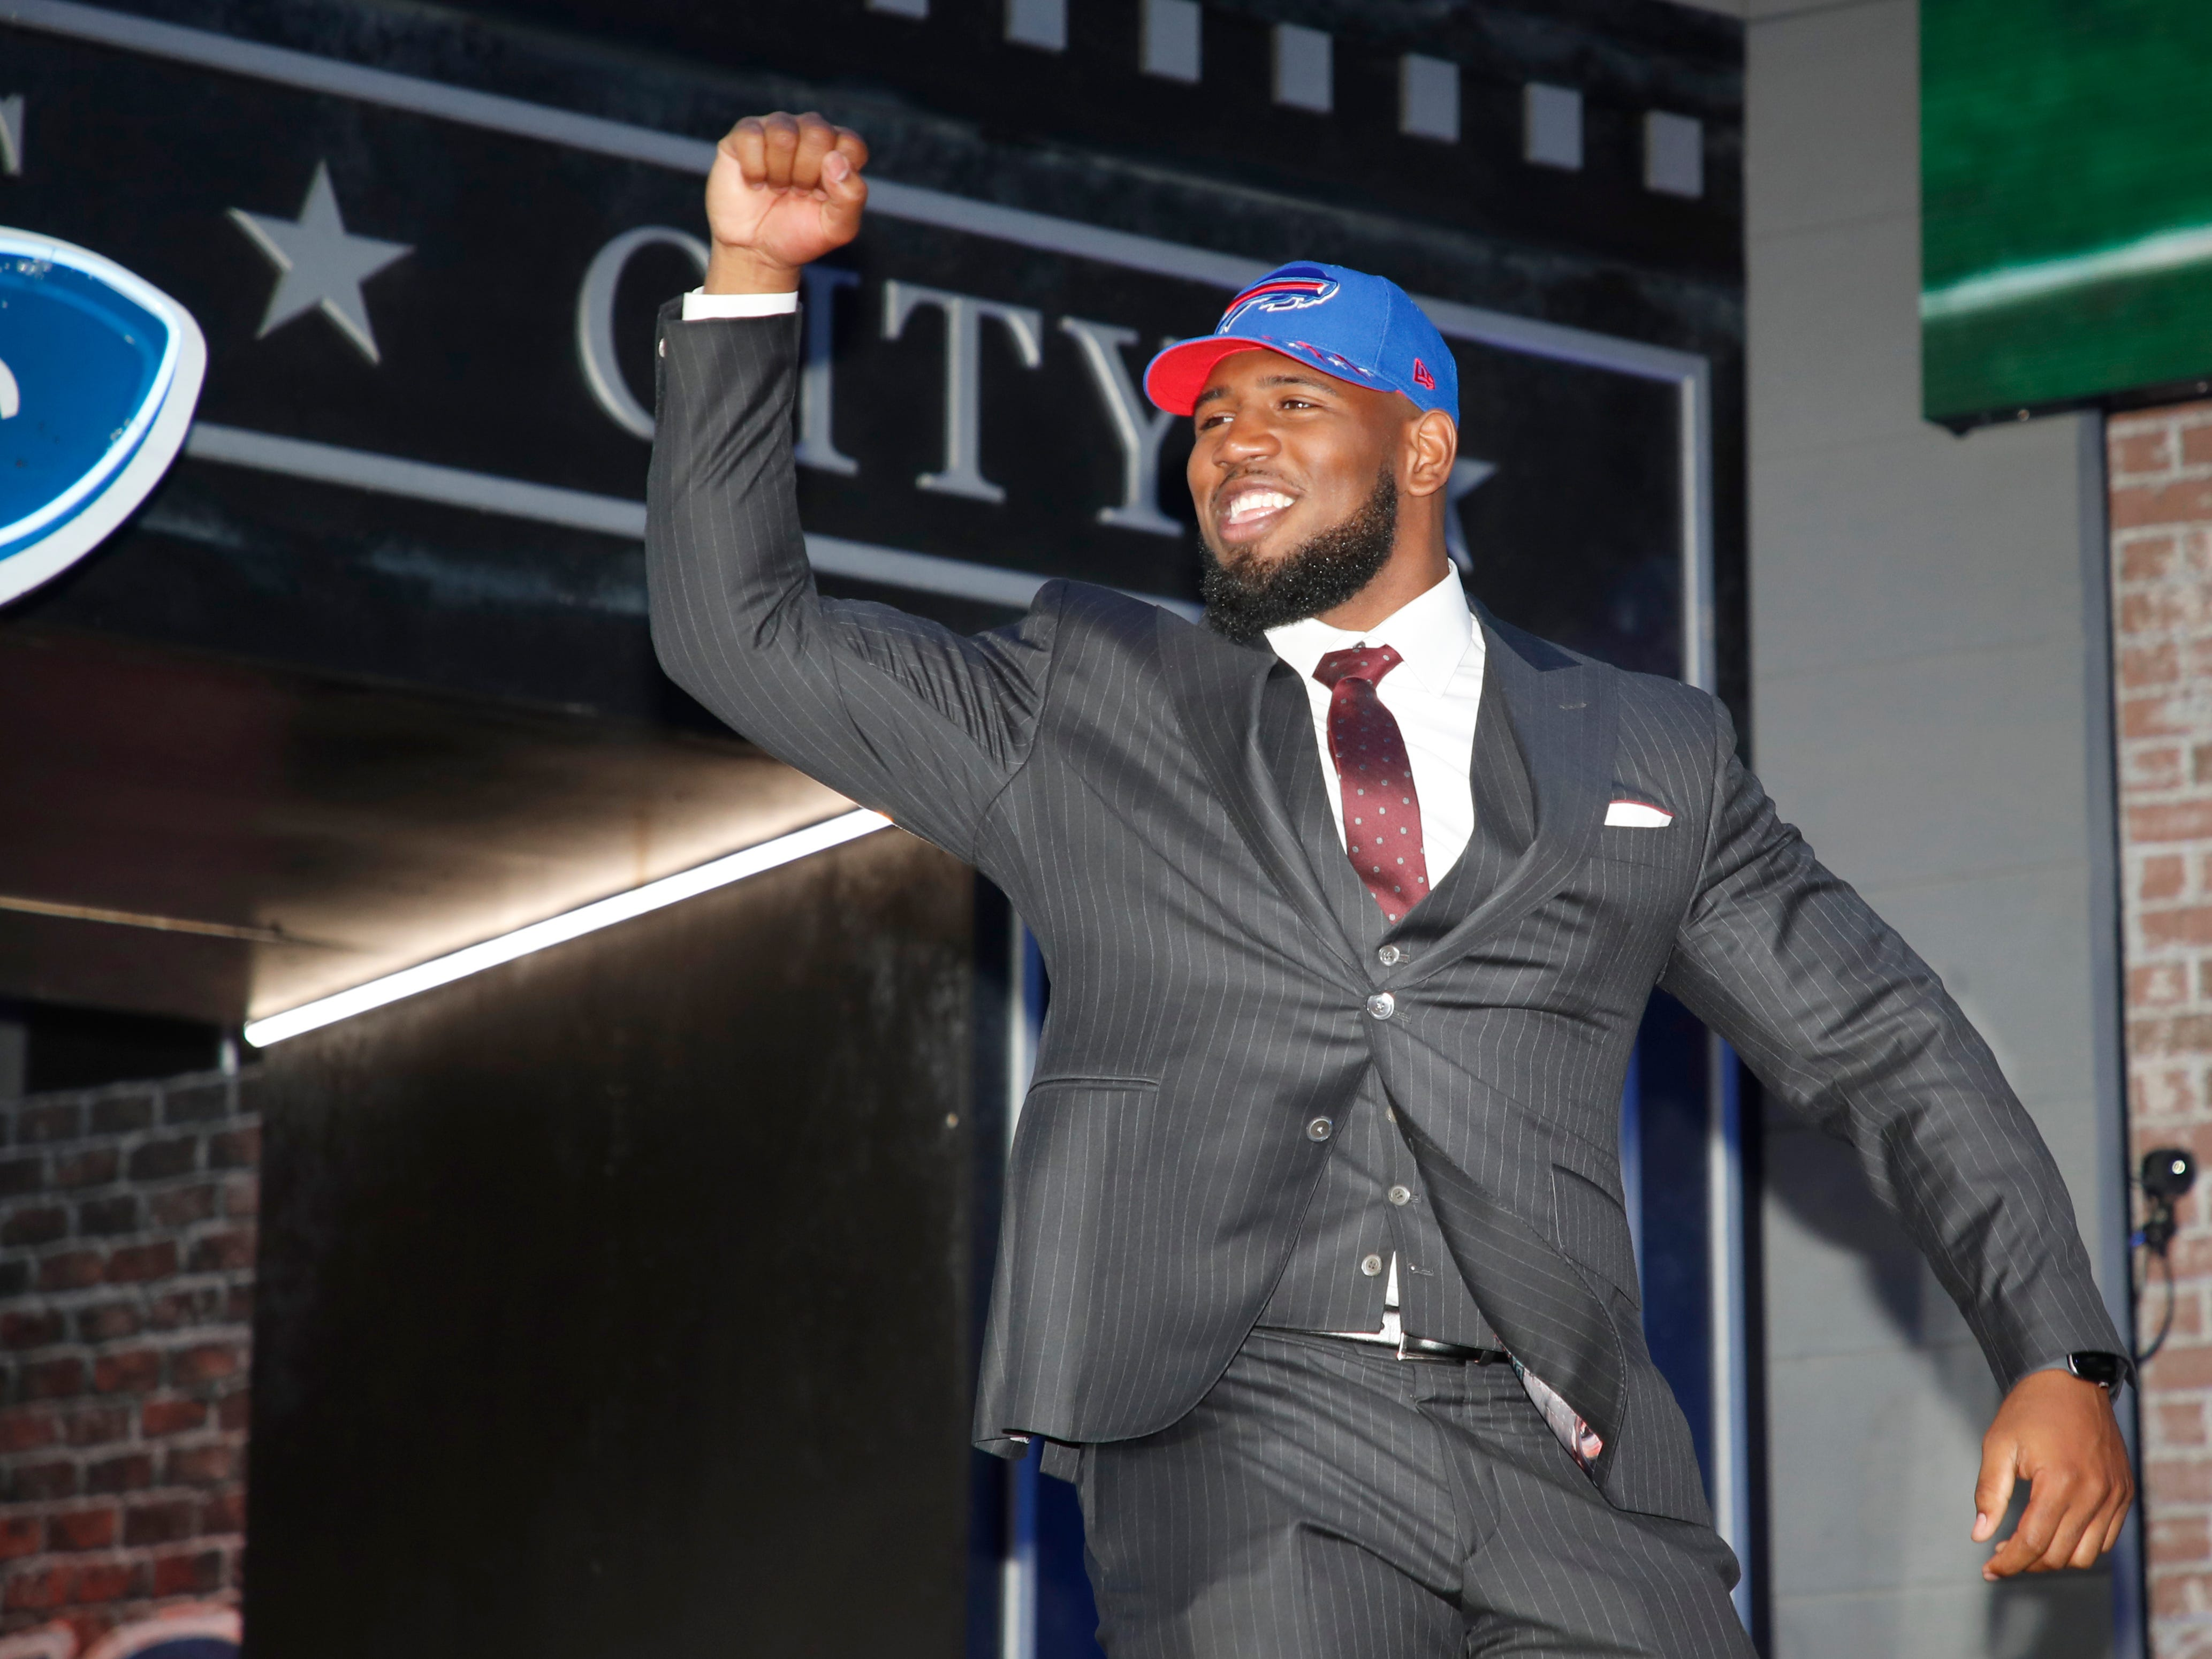 25. Bills (24): When you're under radar, you're poised to inflict damage. Buffalo appears ready to do so after quietly amassing free agent and rookie talent.